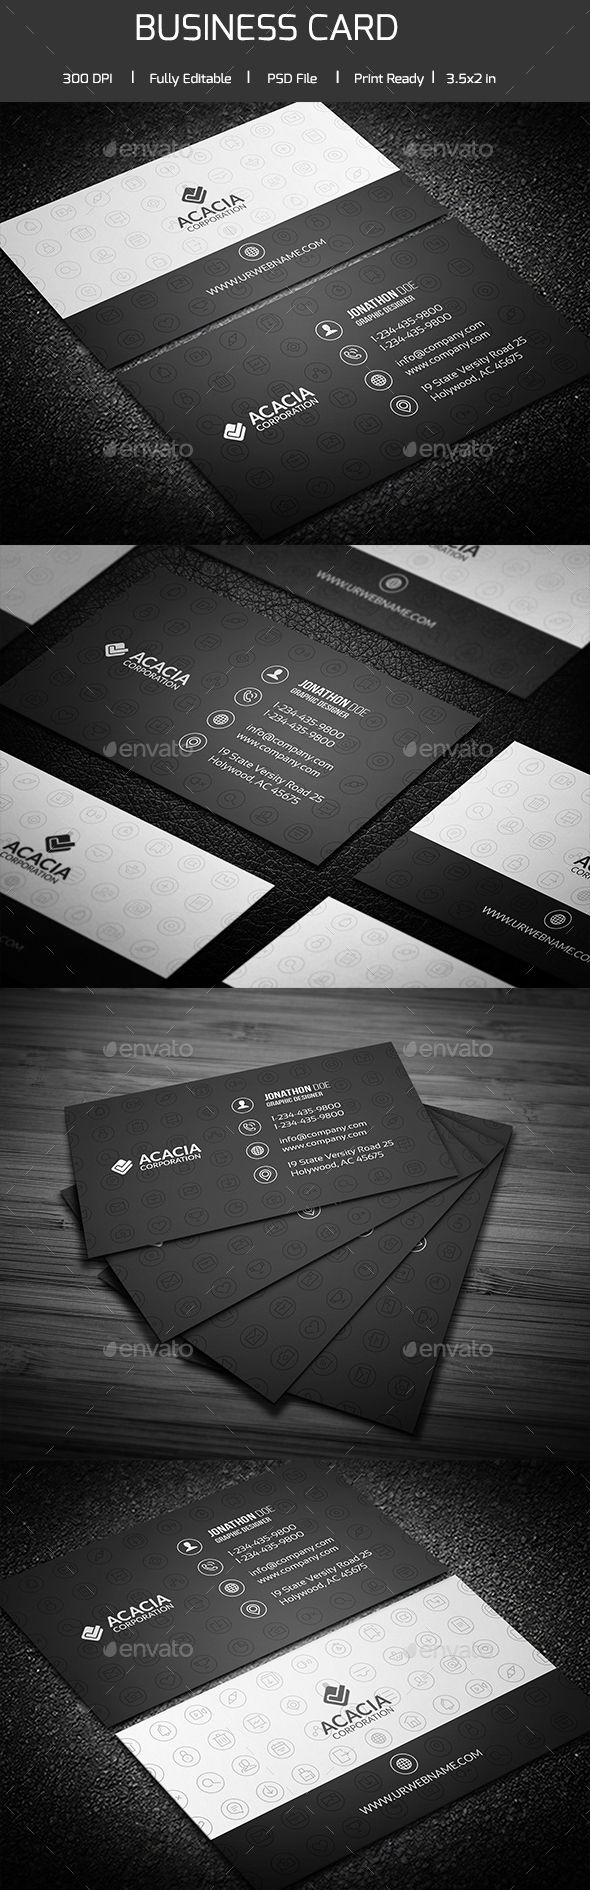 Social icon business card social icons business cards and icons social icon business card reheart Images